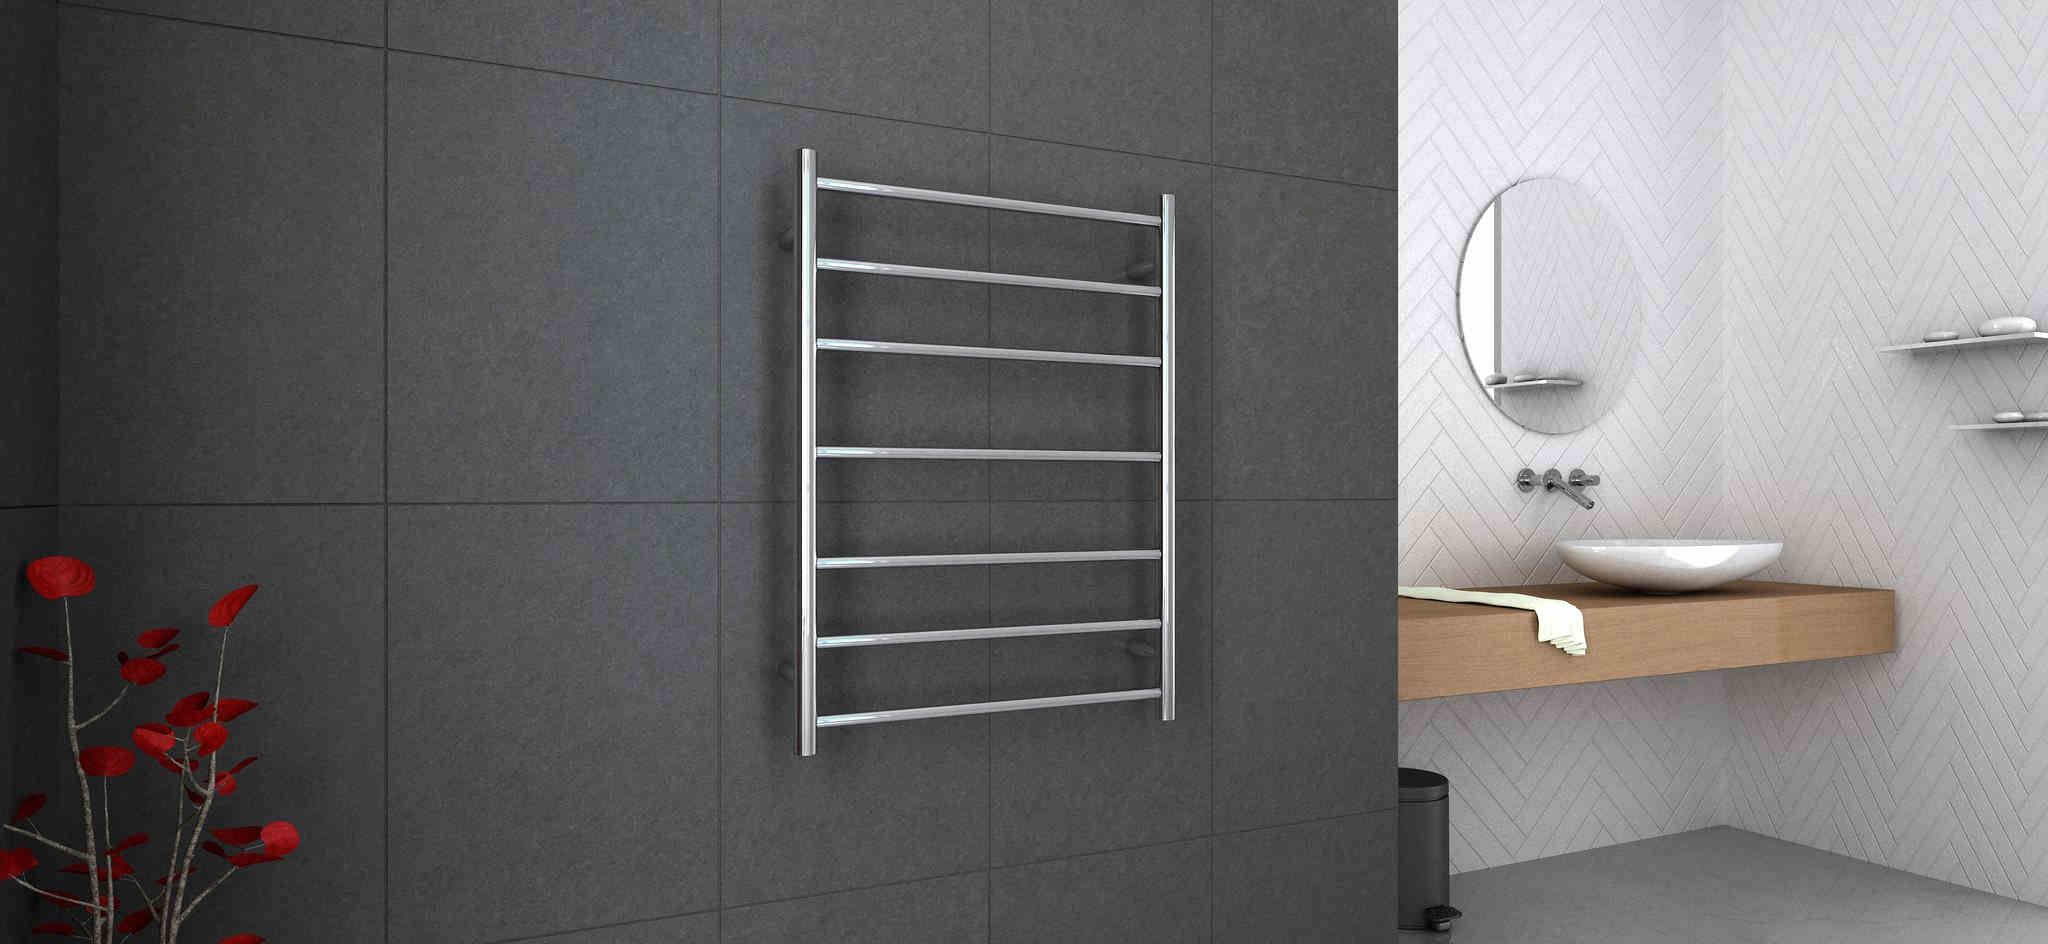 Ladder design heated towel rail